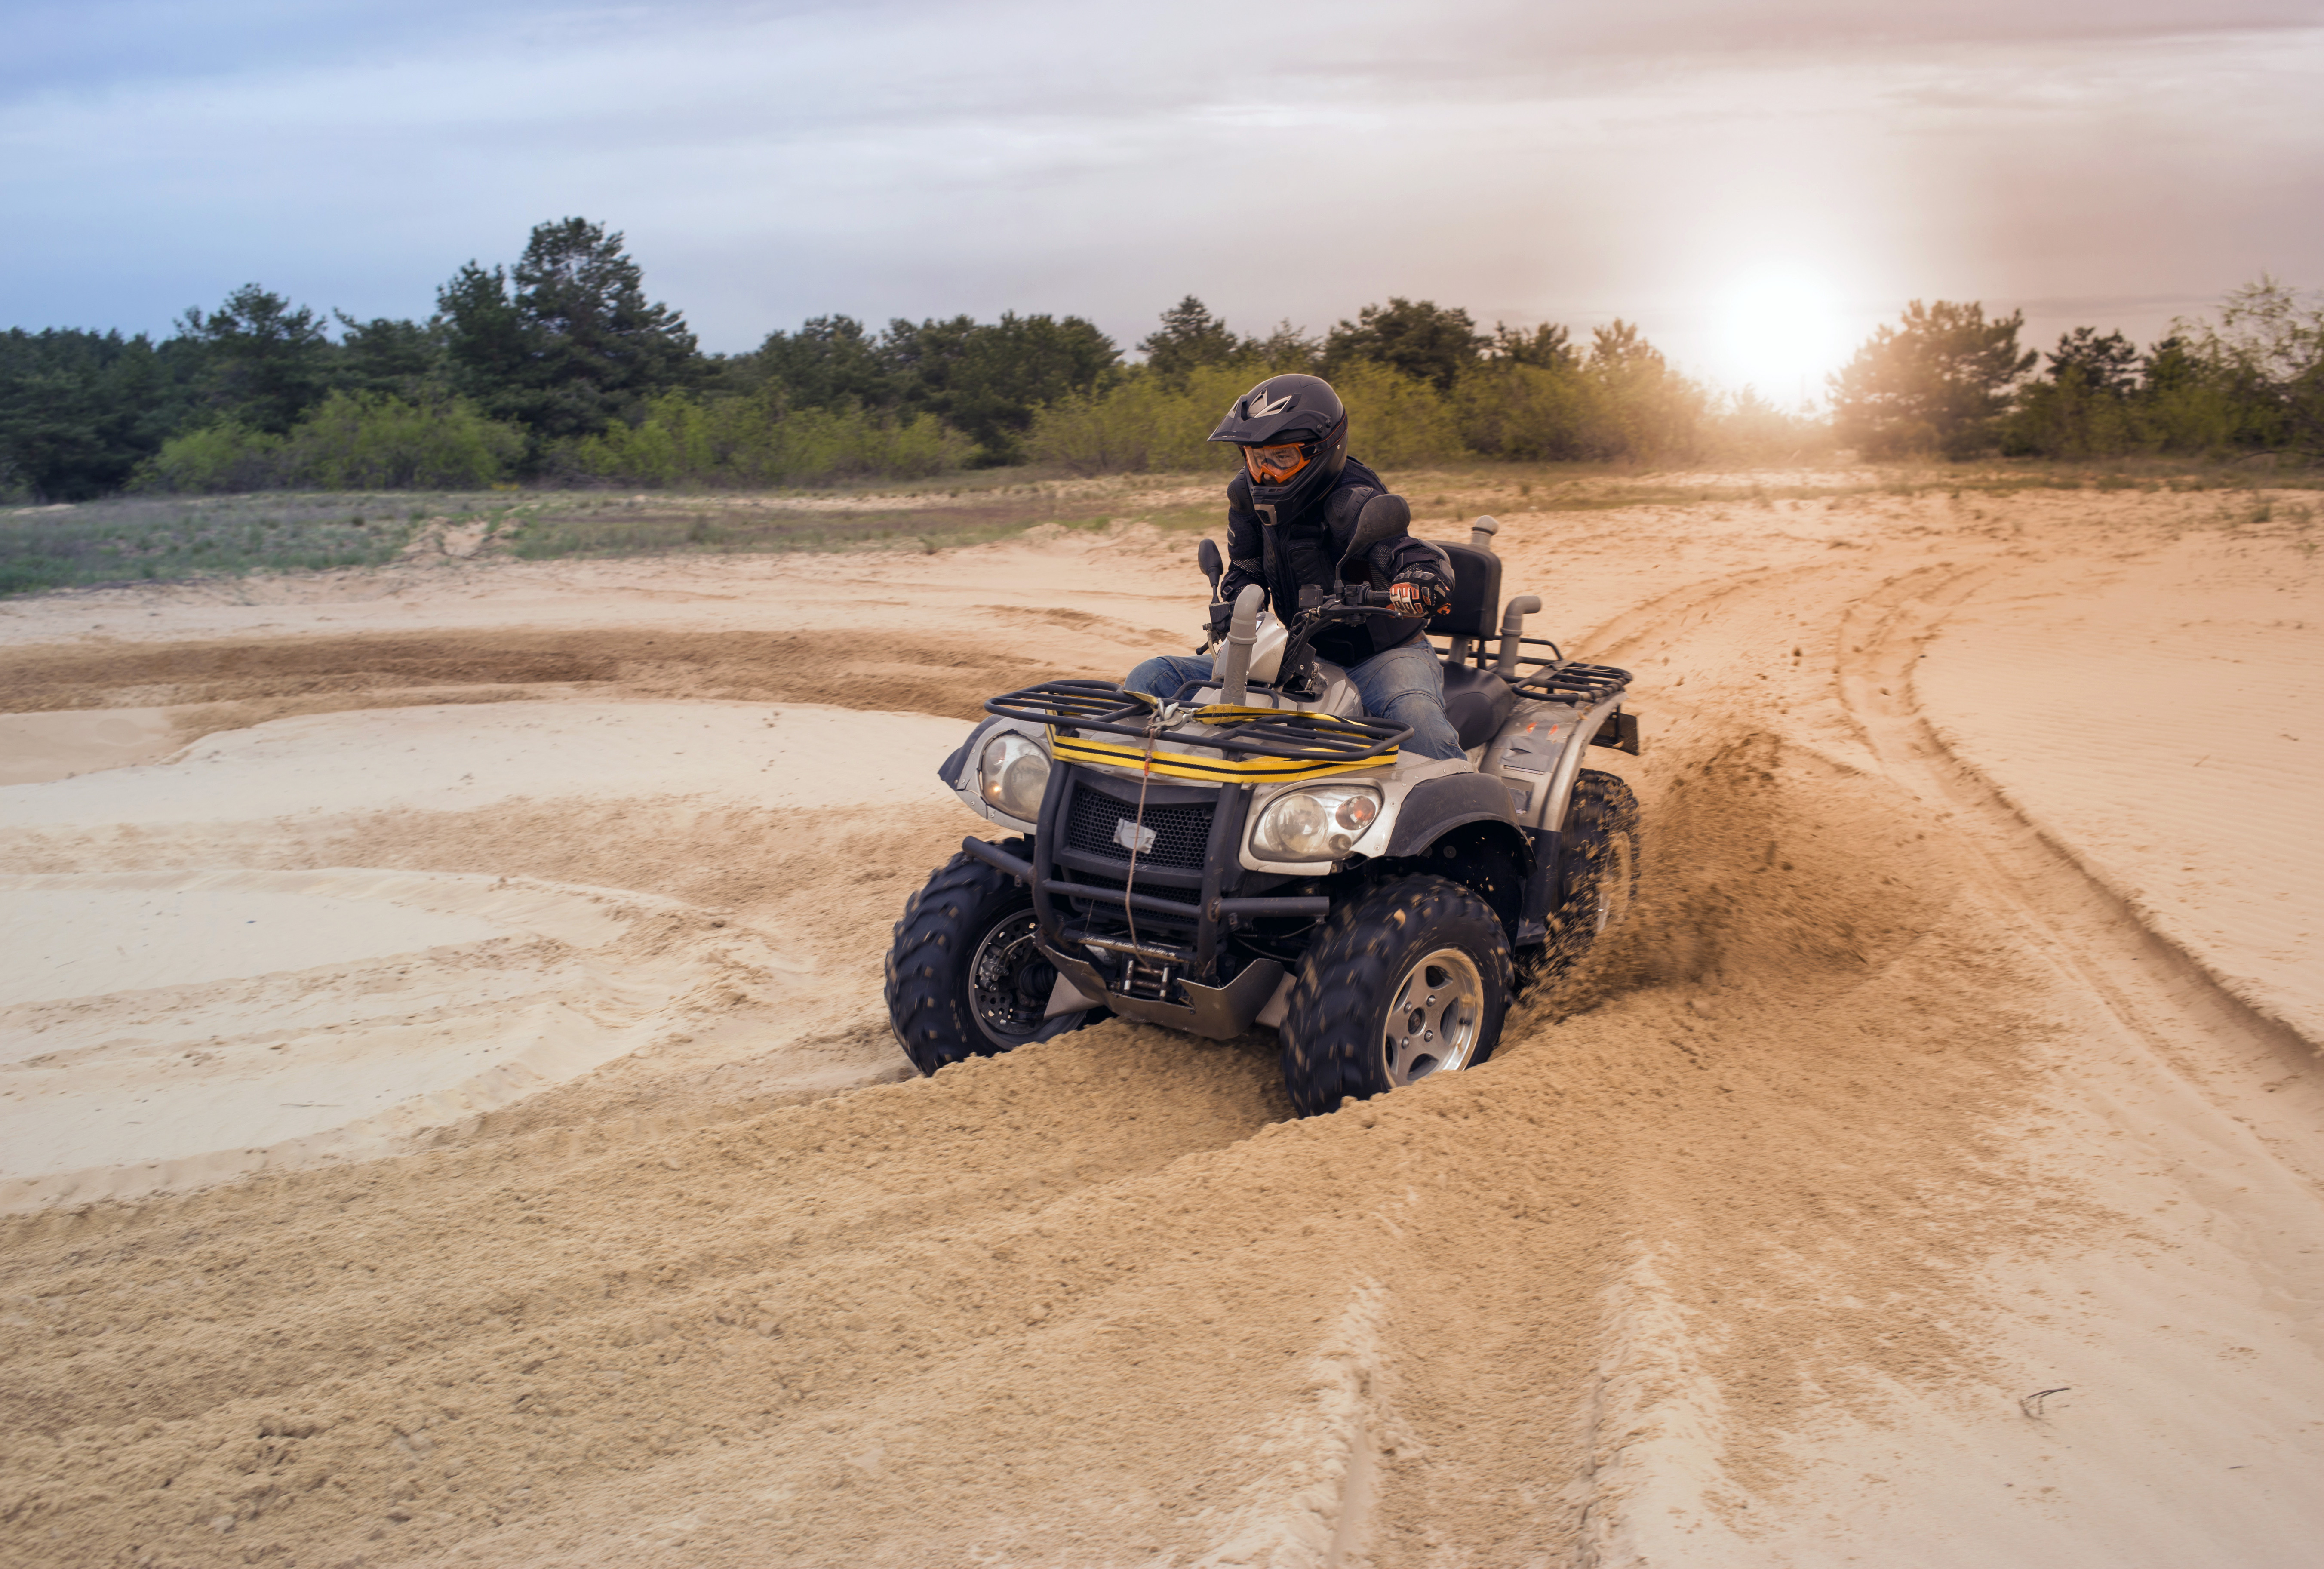 Advice to prevent ATV accidents